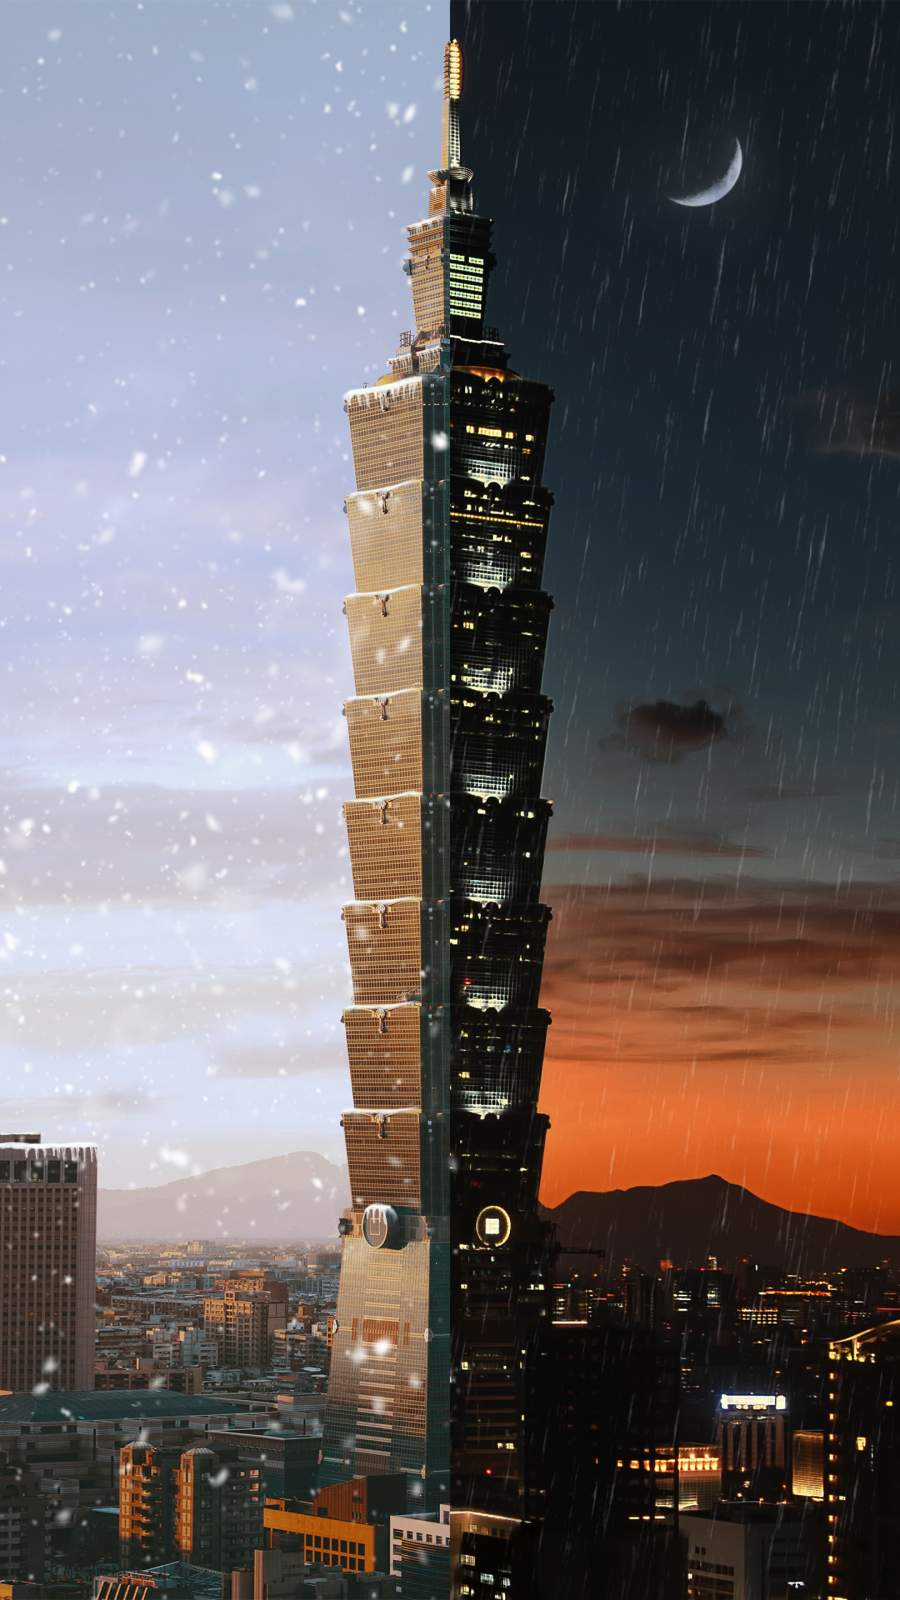 Day Night Taipei 101 iPhone Wallpaper